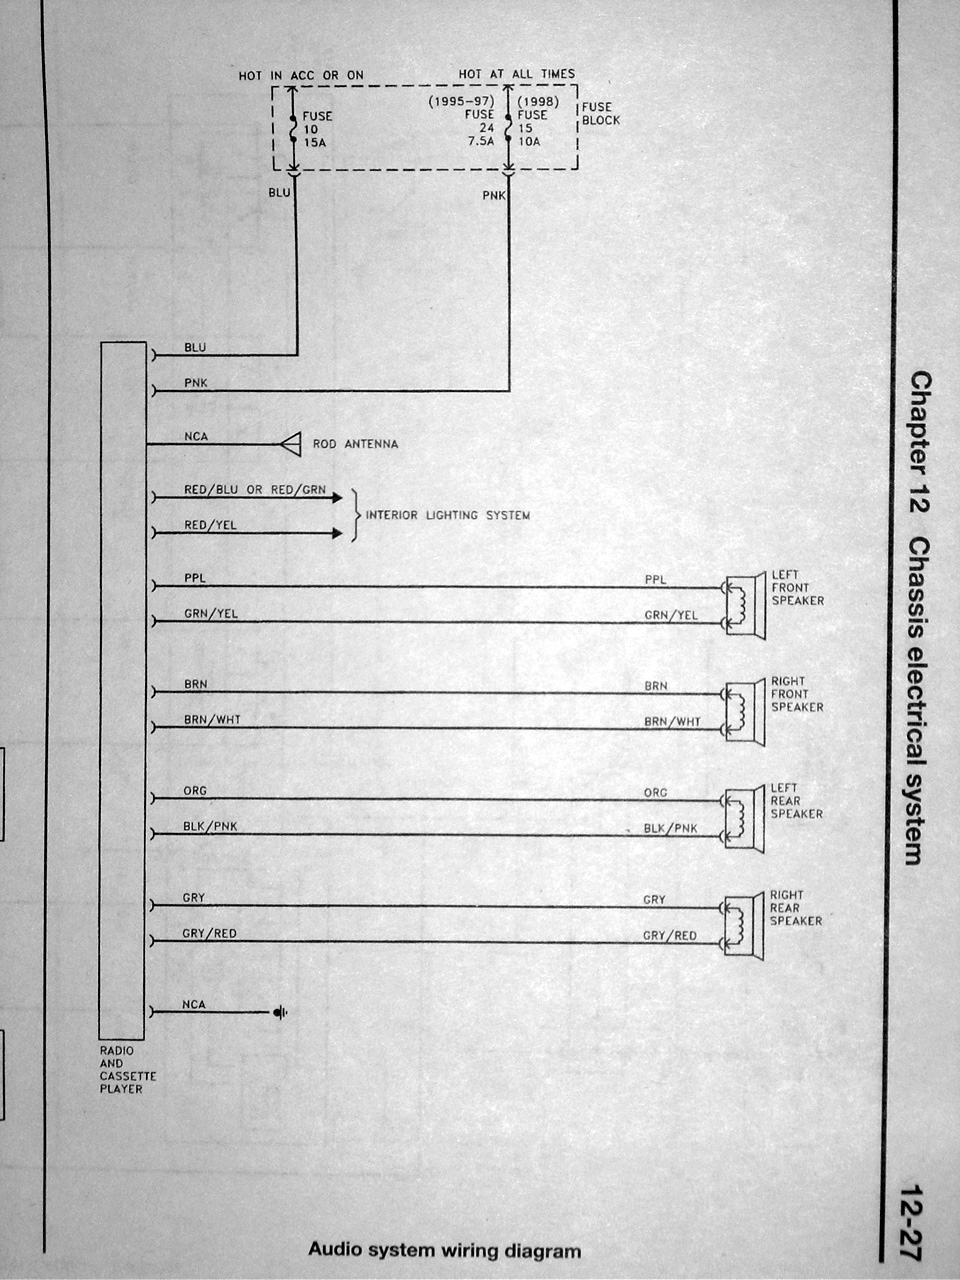 Nissan Radio Wiring Diagrams Library Diagram For 1999 Pathfinder